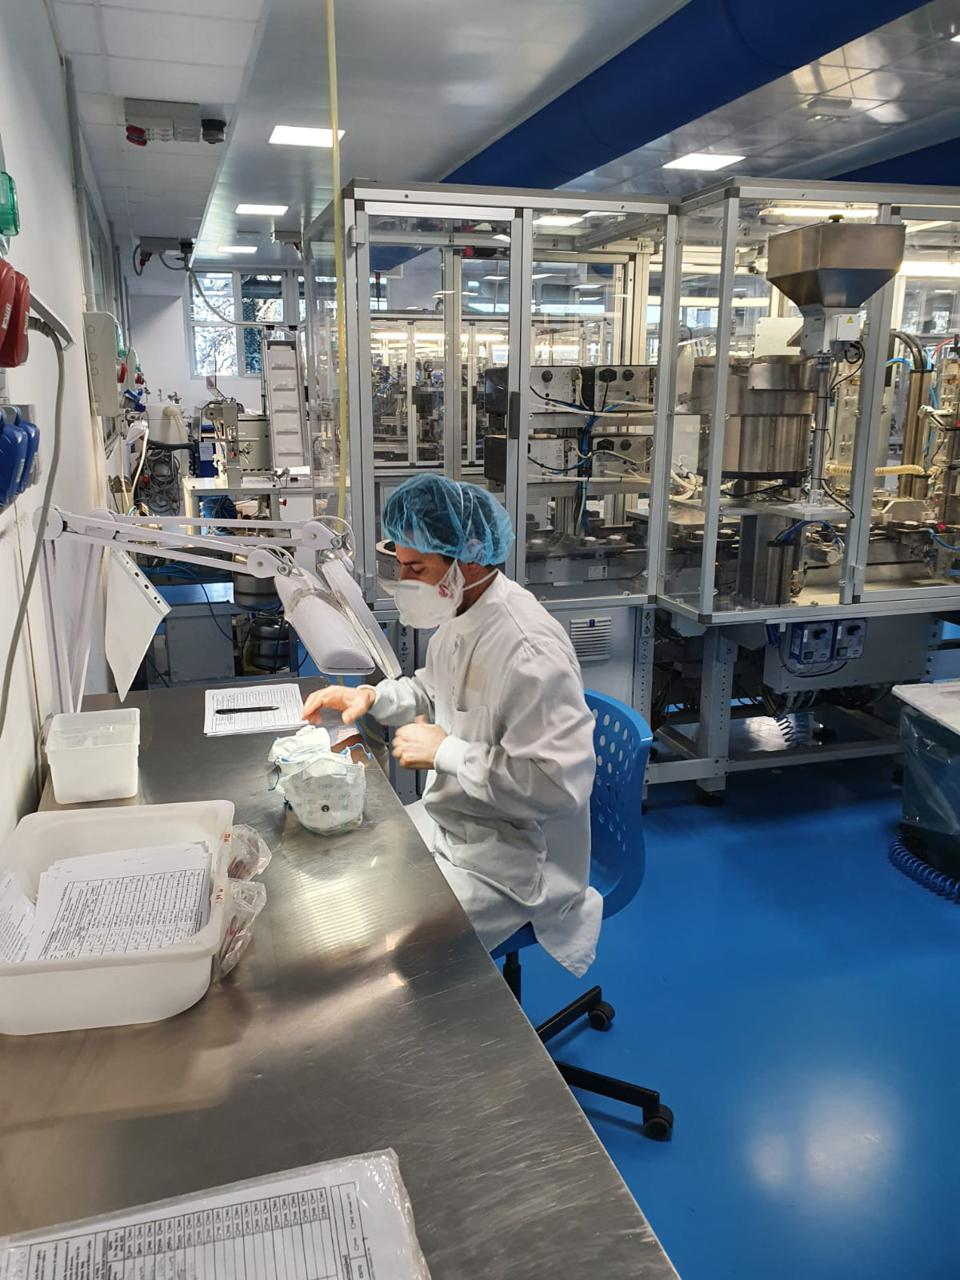 Production line for GVS masks in Italy.